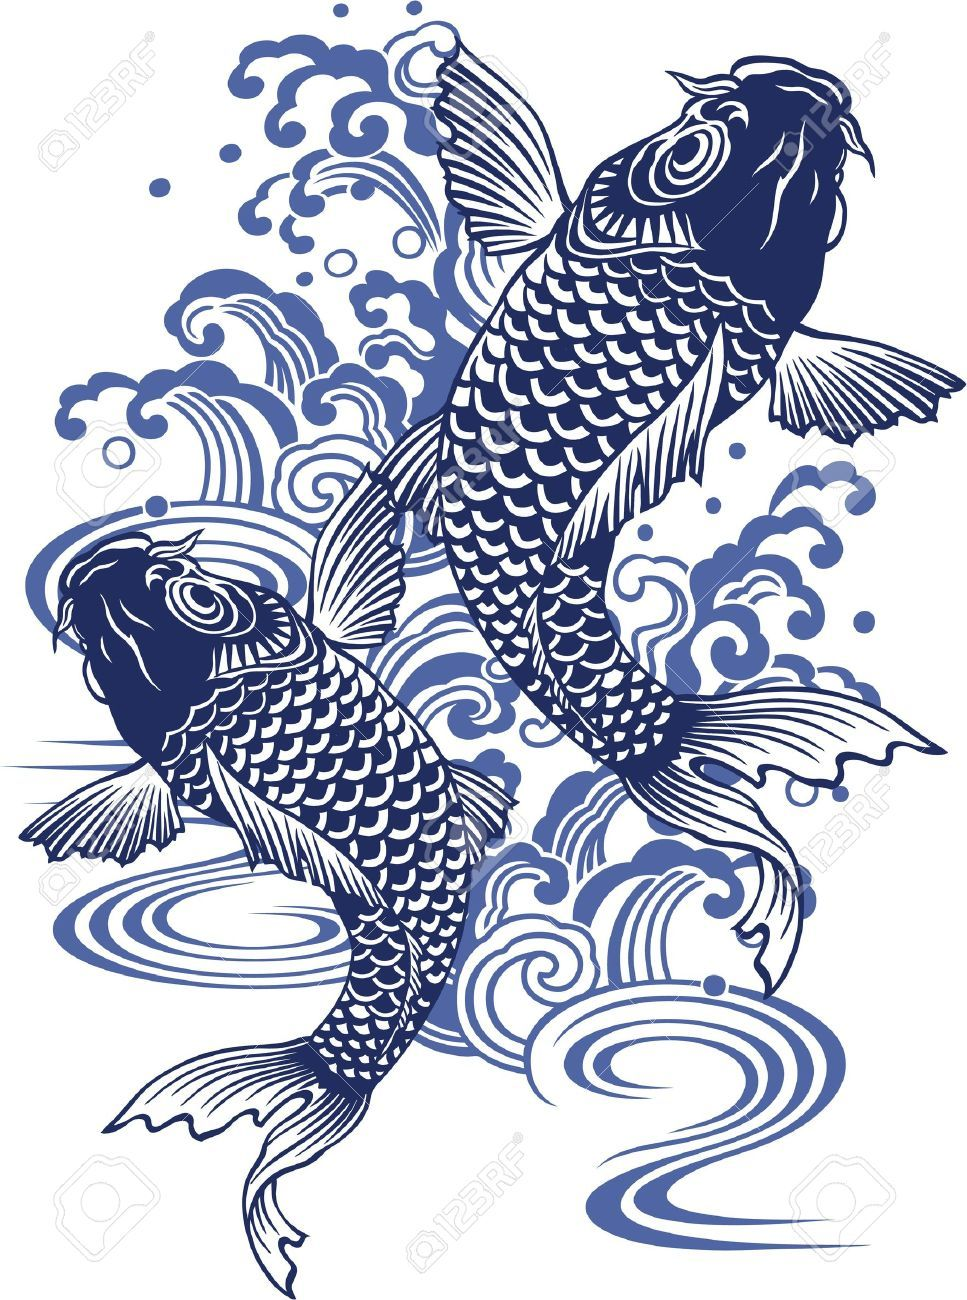 Stock Photo Carpe Japonaise Illustration Japonaise Carpe Koi Dessin